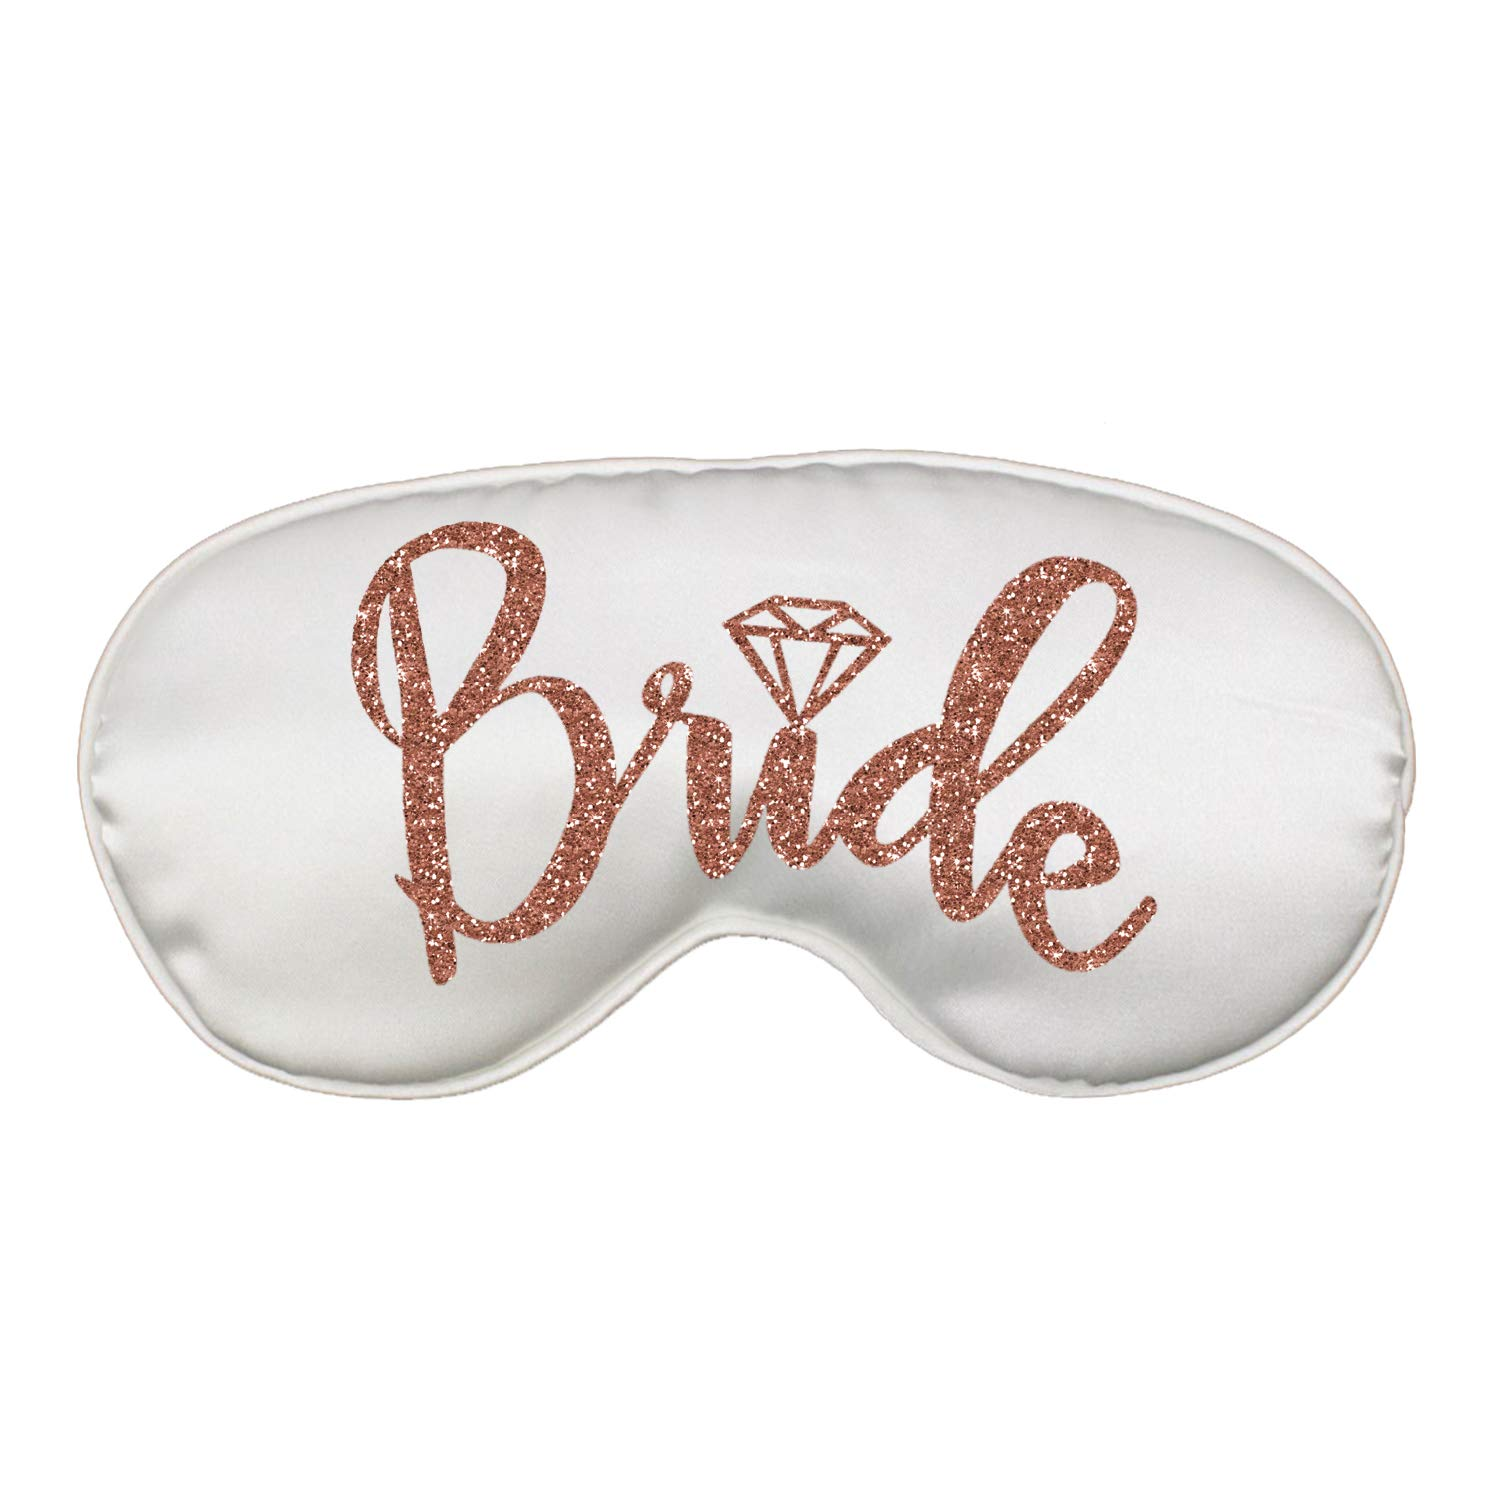 Rose Gold Bridal Party Favor Sleep Mask - Set of 3 - (1) Bride White, (2) Shhh! Bachelorette Party Recovery in Progress - Mask(RgBrd/2Shh) Wht by RhinestoneSash (Image #2)